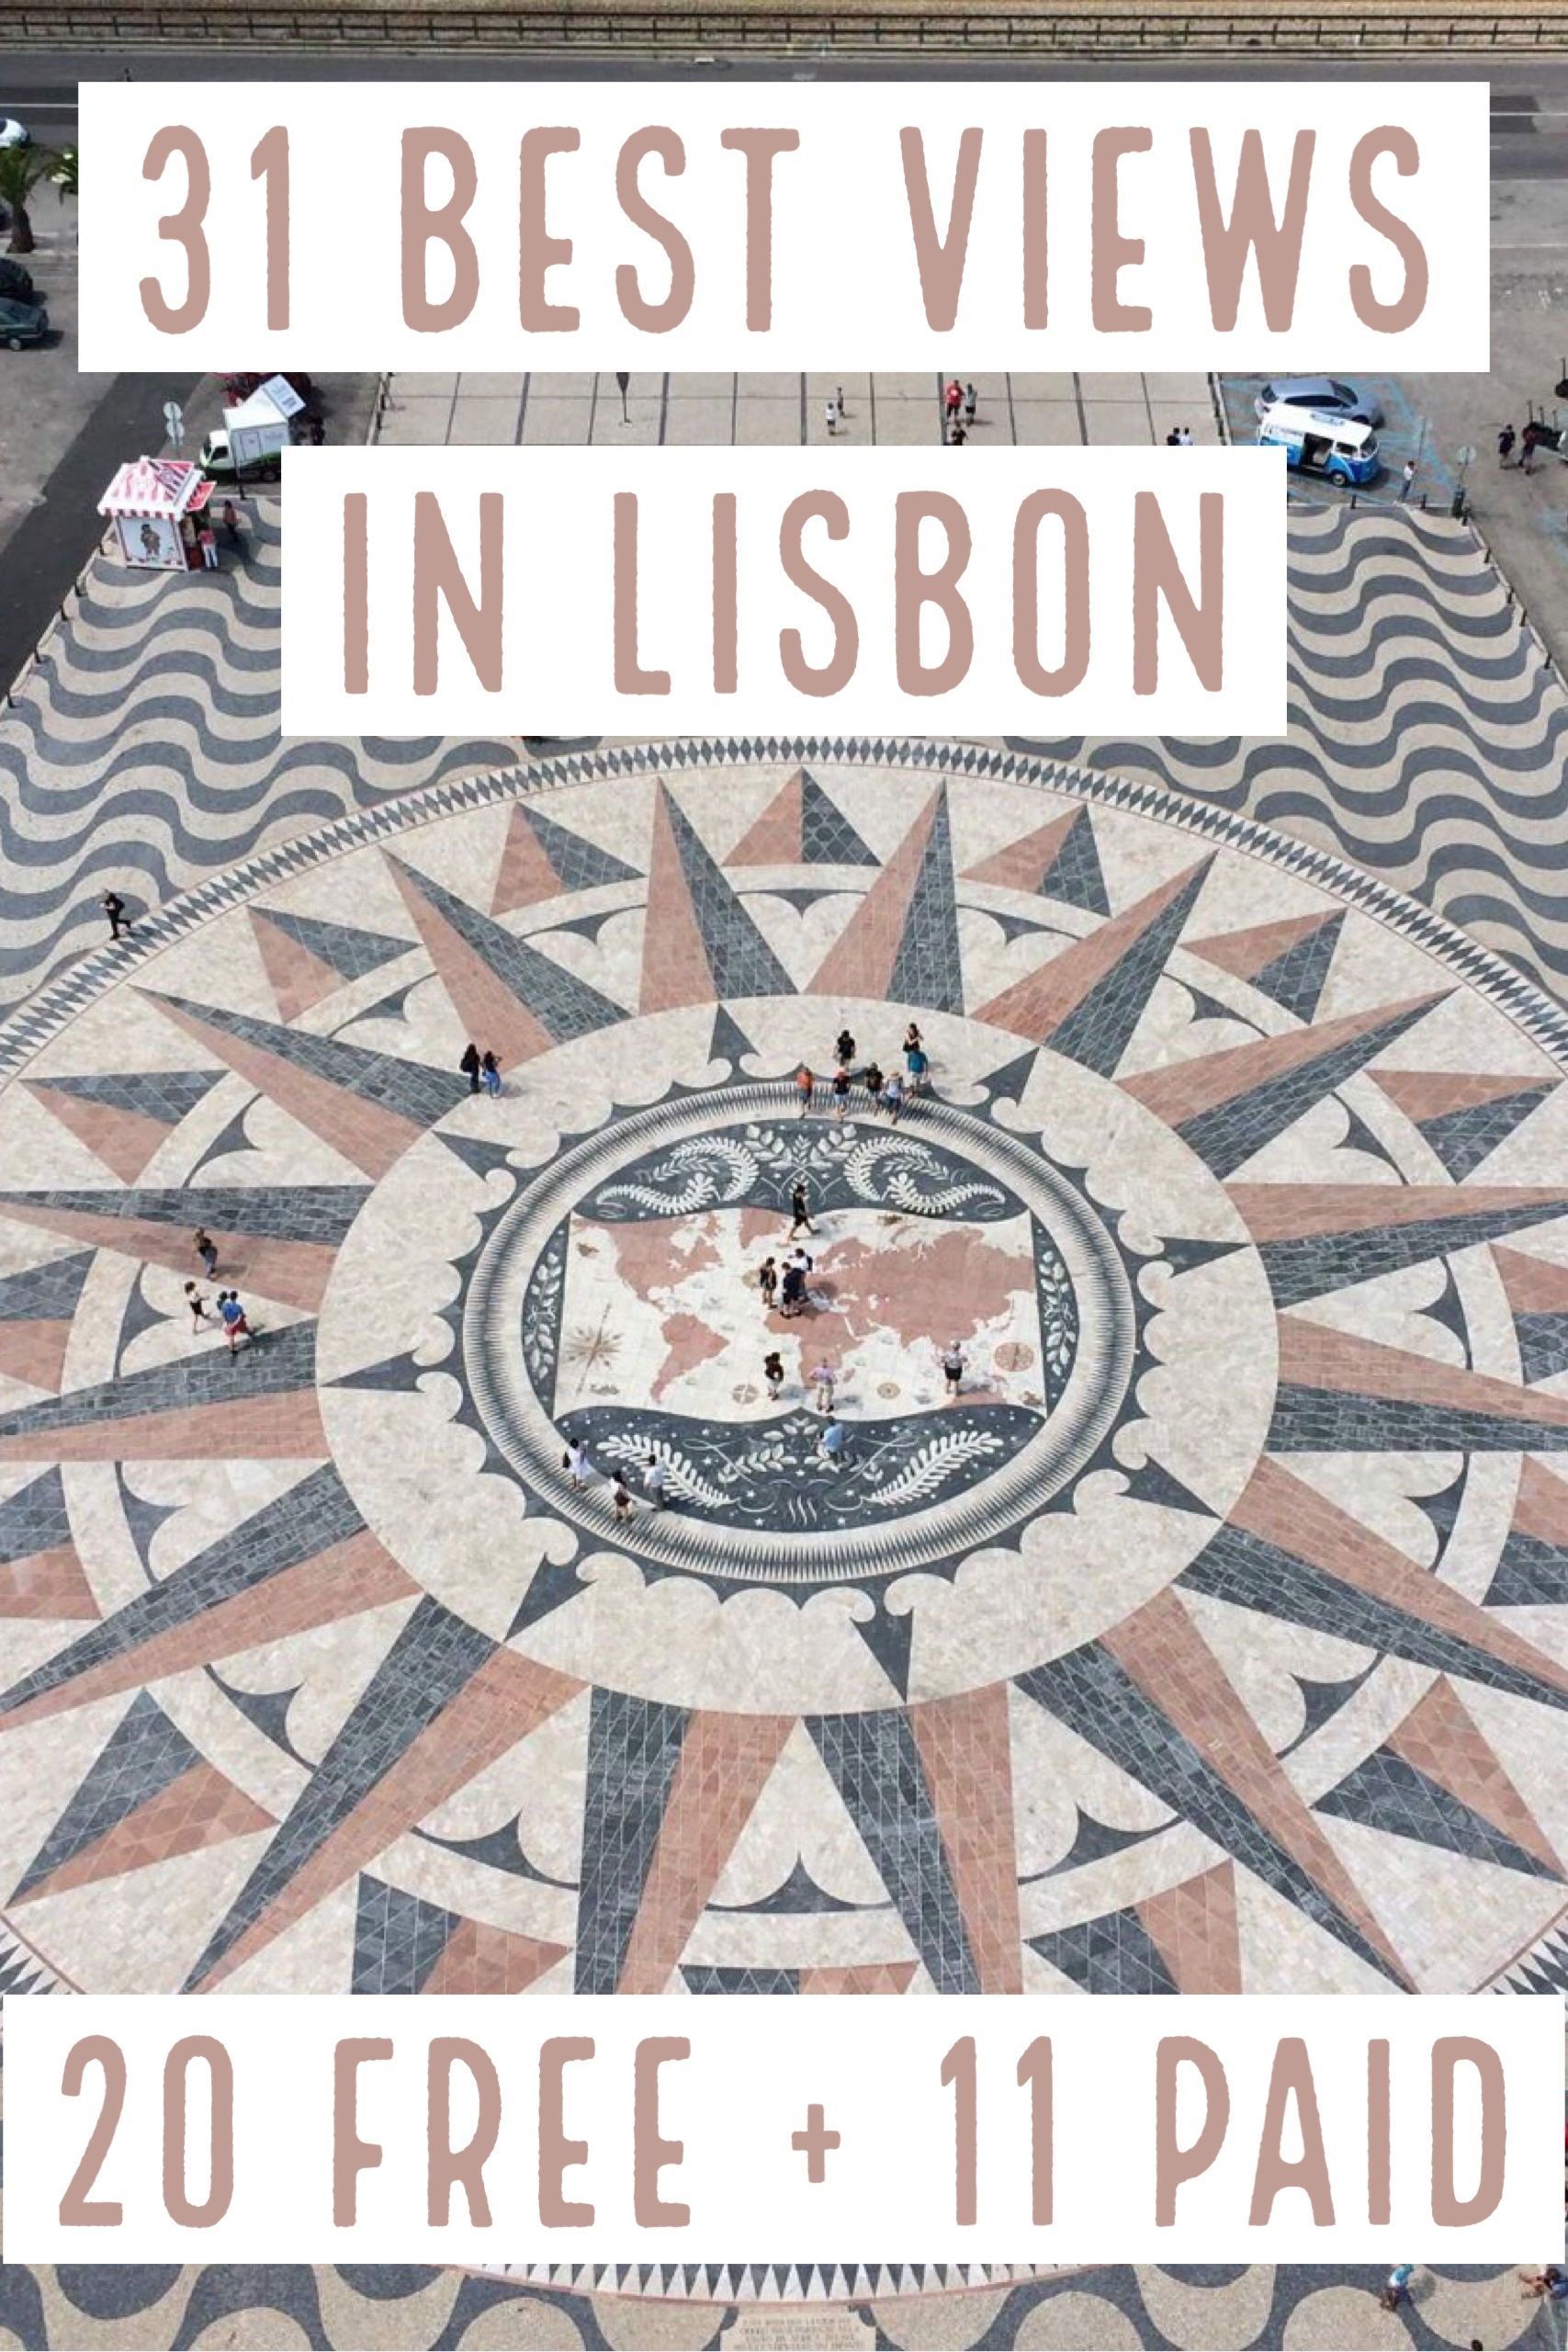 Read about the 31 best views in Lisbon (free and paid), what's cool about them, and how to reach by public transportation. Includes a handy map with all the viewpoints mentioned here. #Lisbon #Portugal @tripprblog